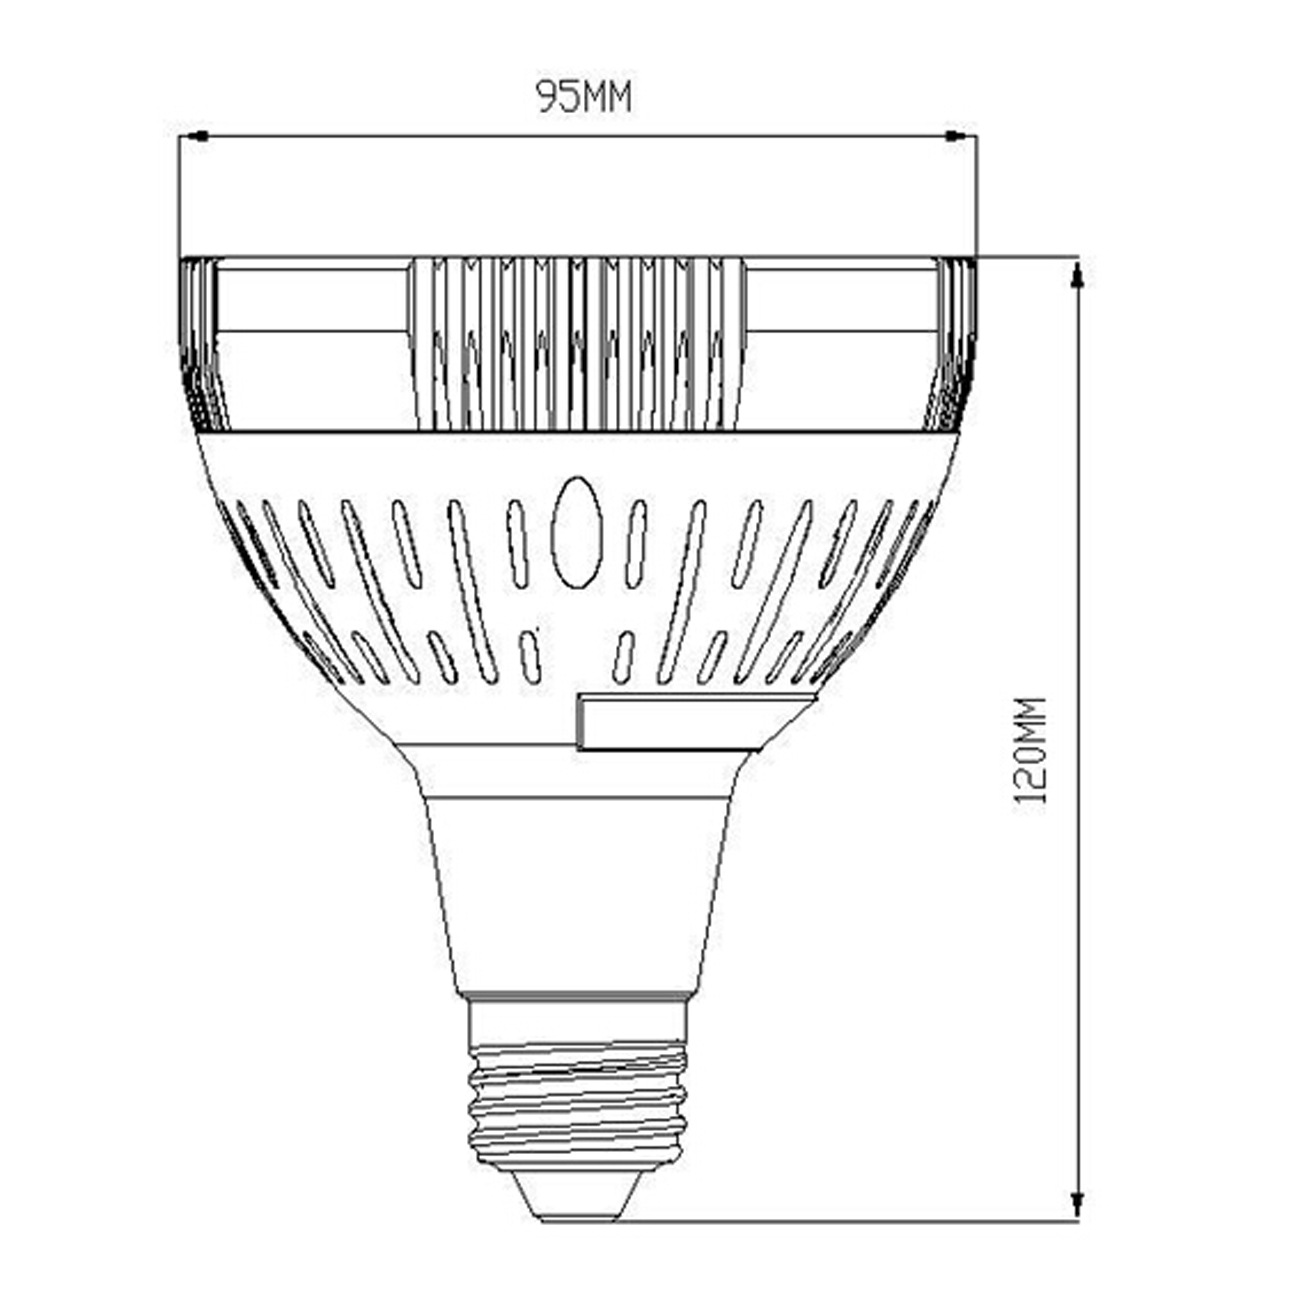 277V PAR30 35 watt led spotlight using OSRAM LED chip